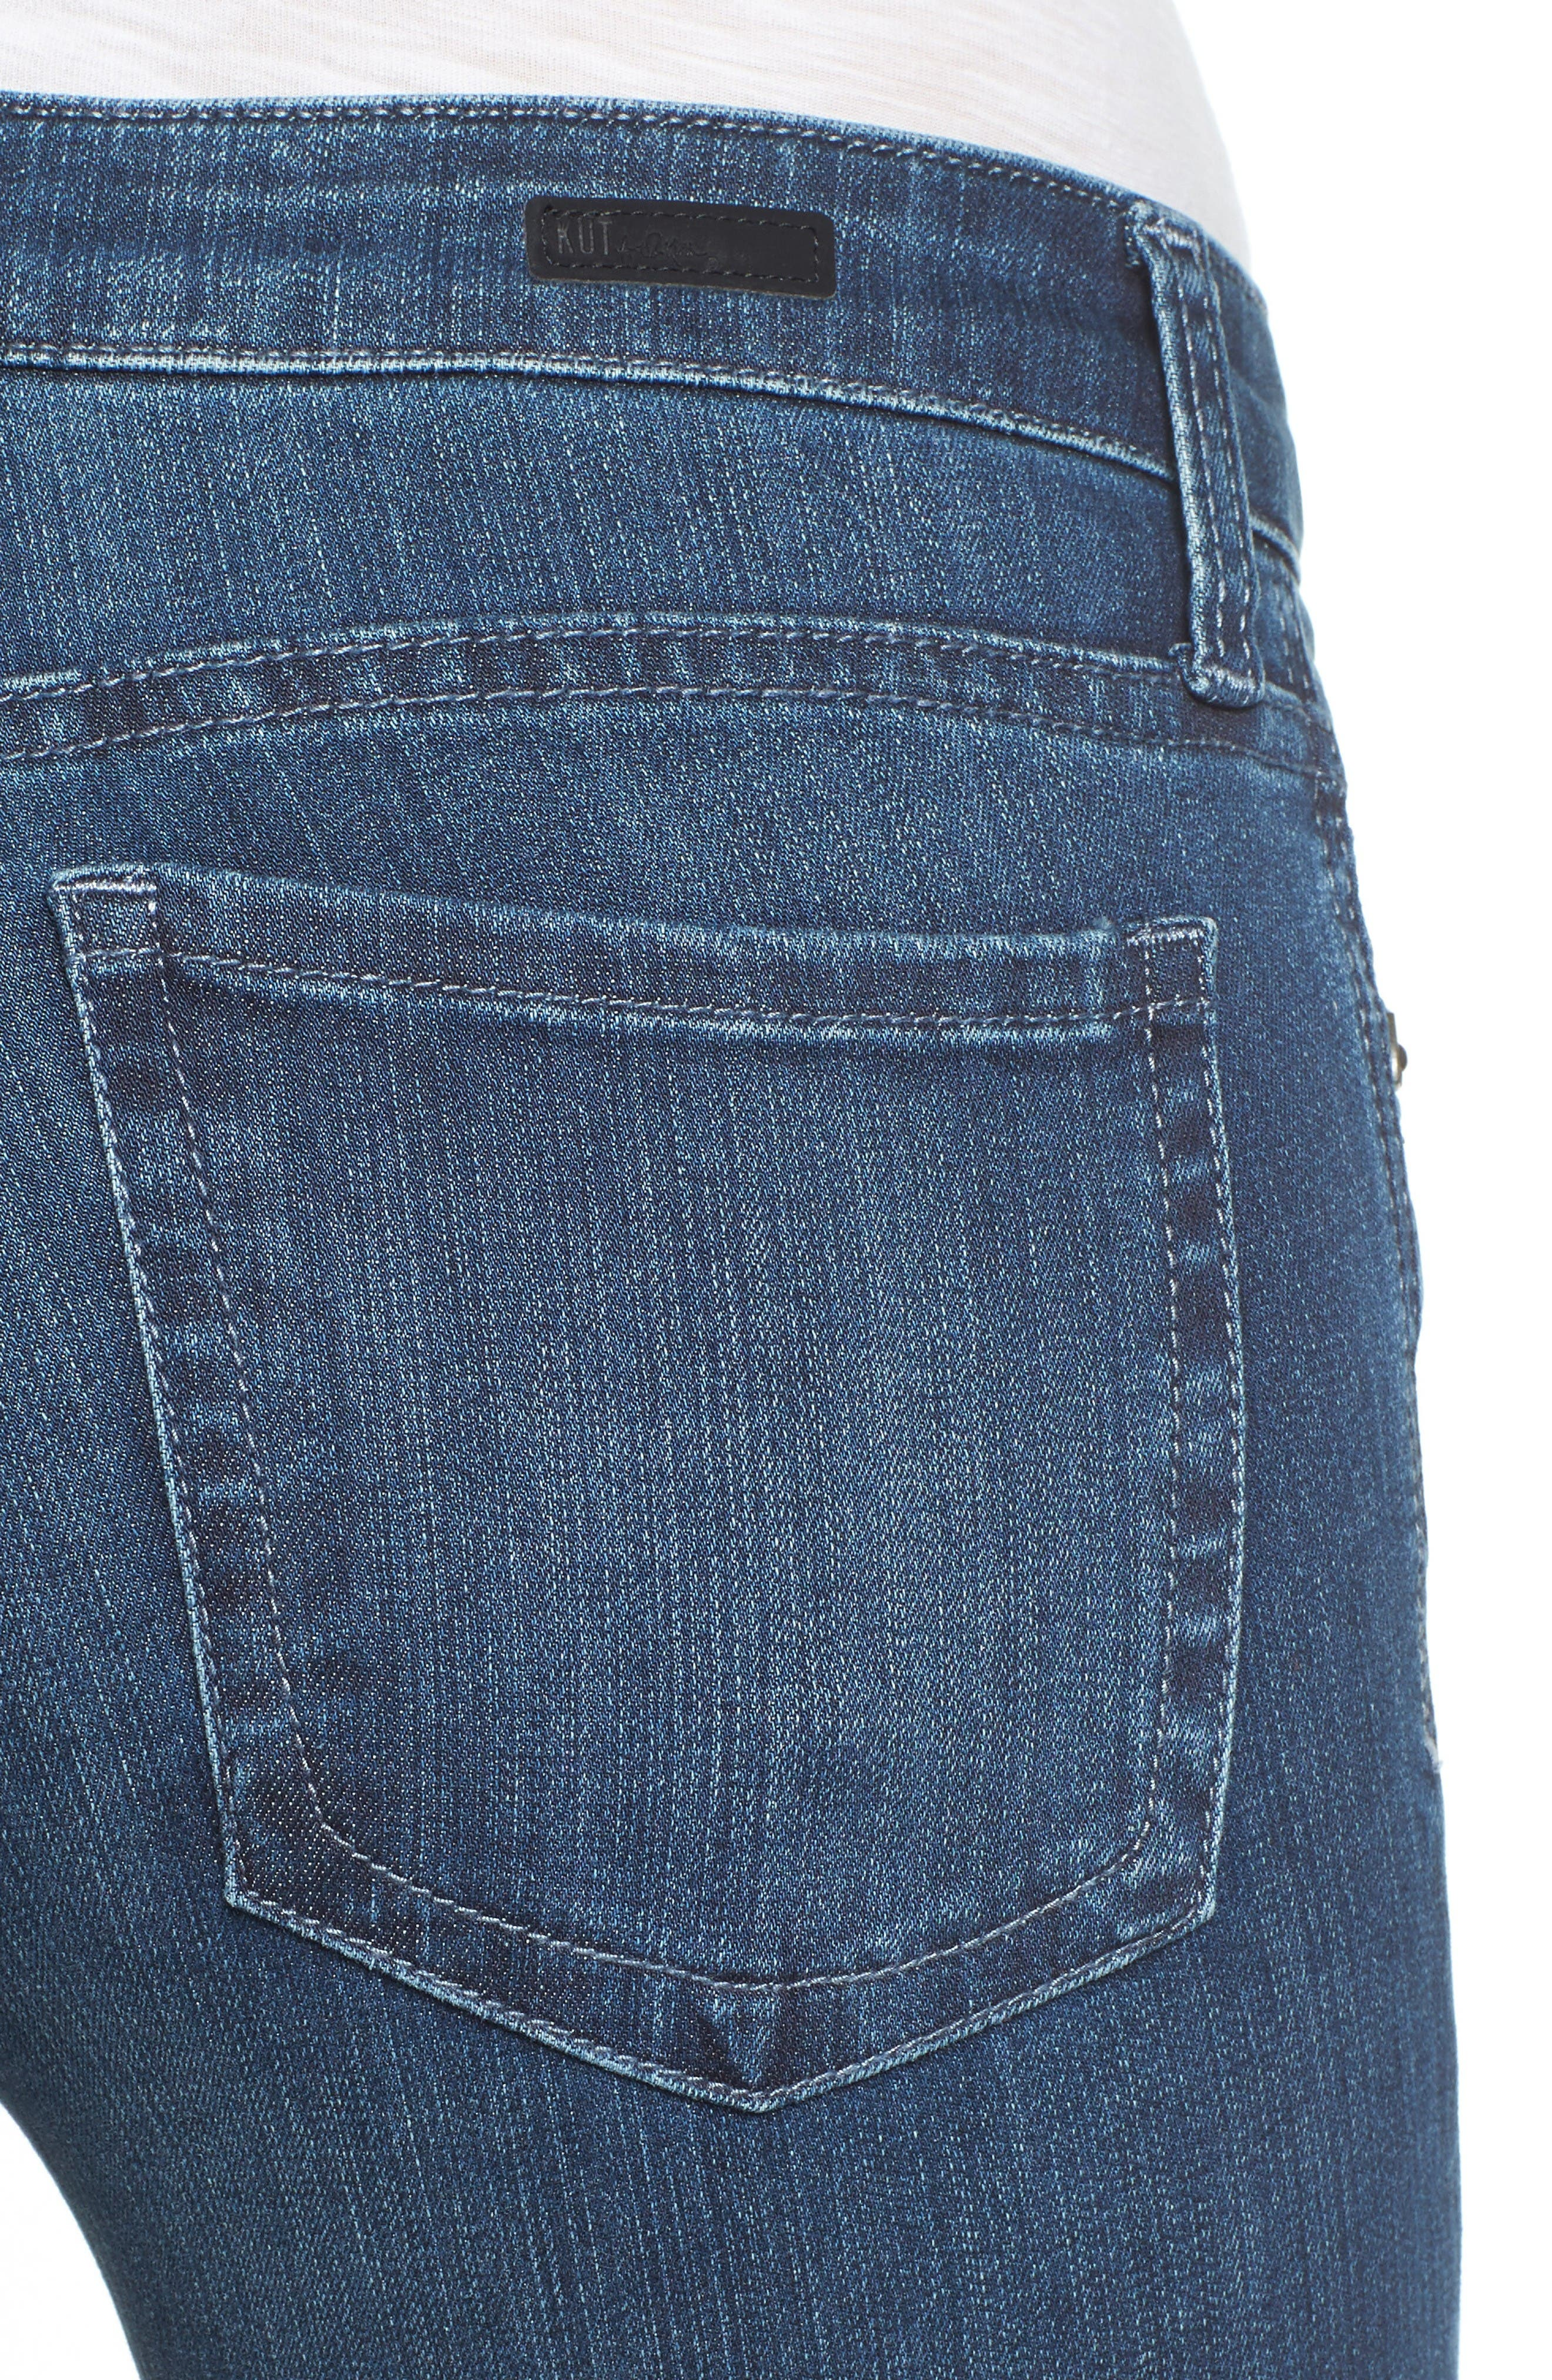 Alternate Image 4  - KUT from the Kloth Diana Stretch Skinny Jeans (Moderation) (Regular & Petite)